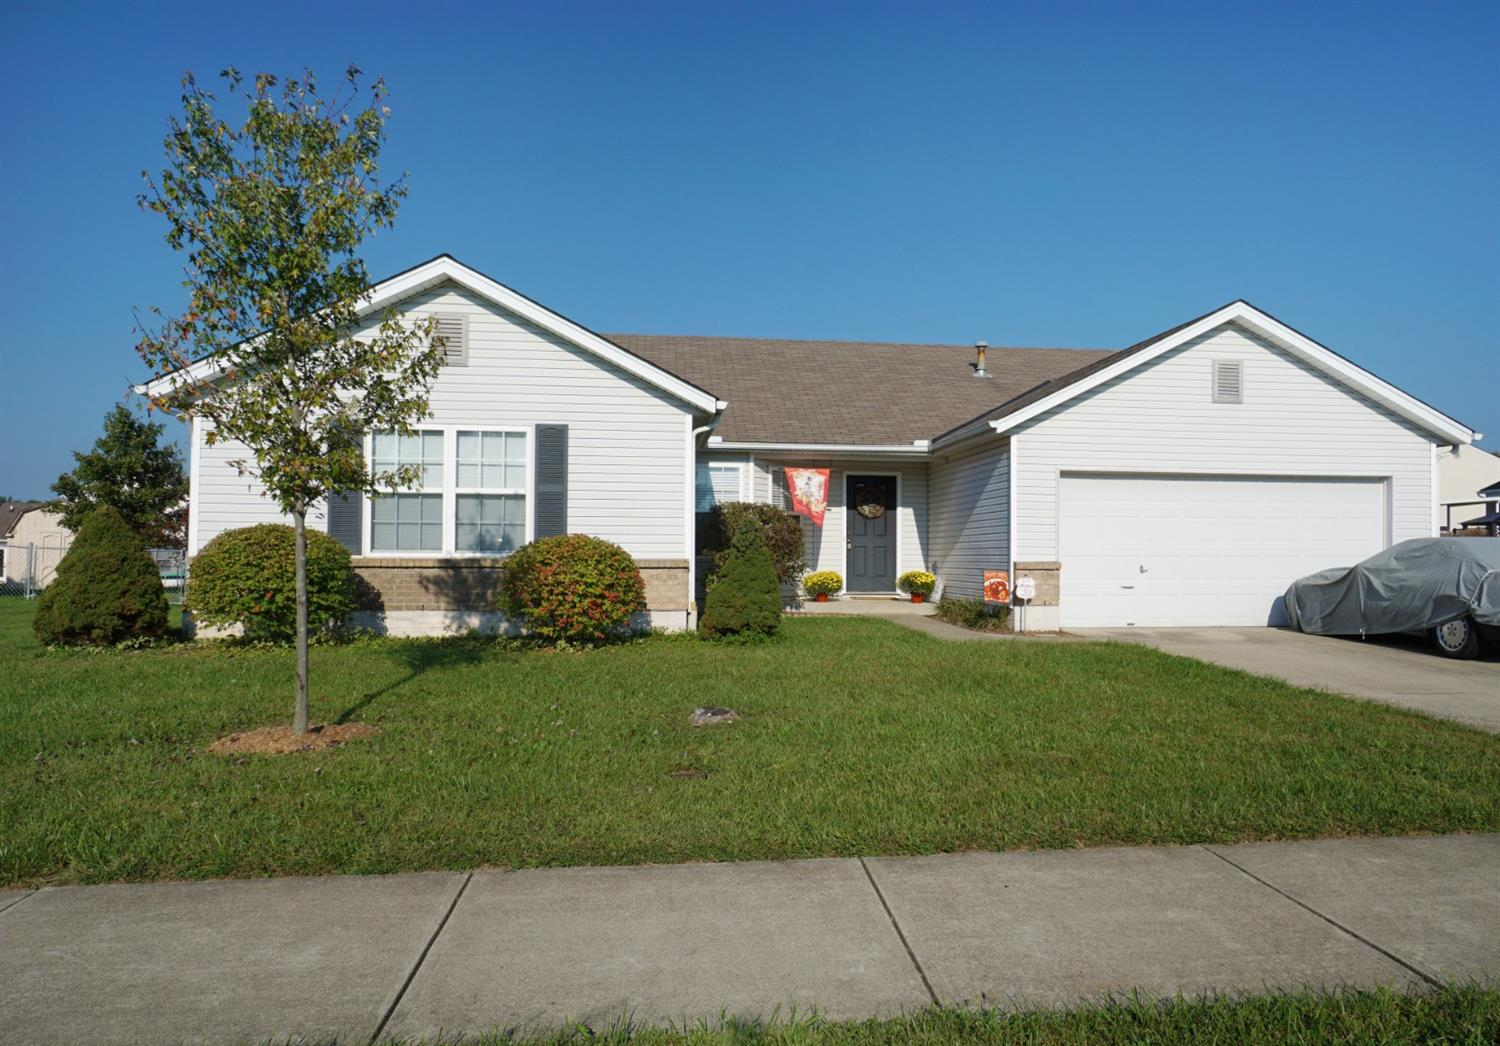 Property for sale at 257 Deer Creek Drive, Amelia,  OH 45102